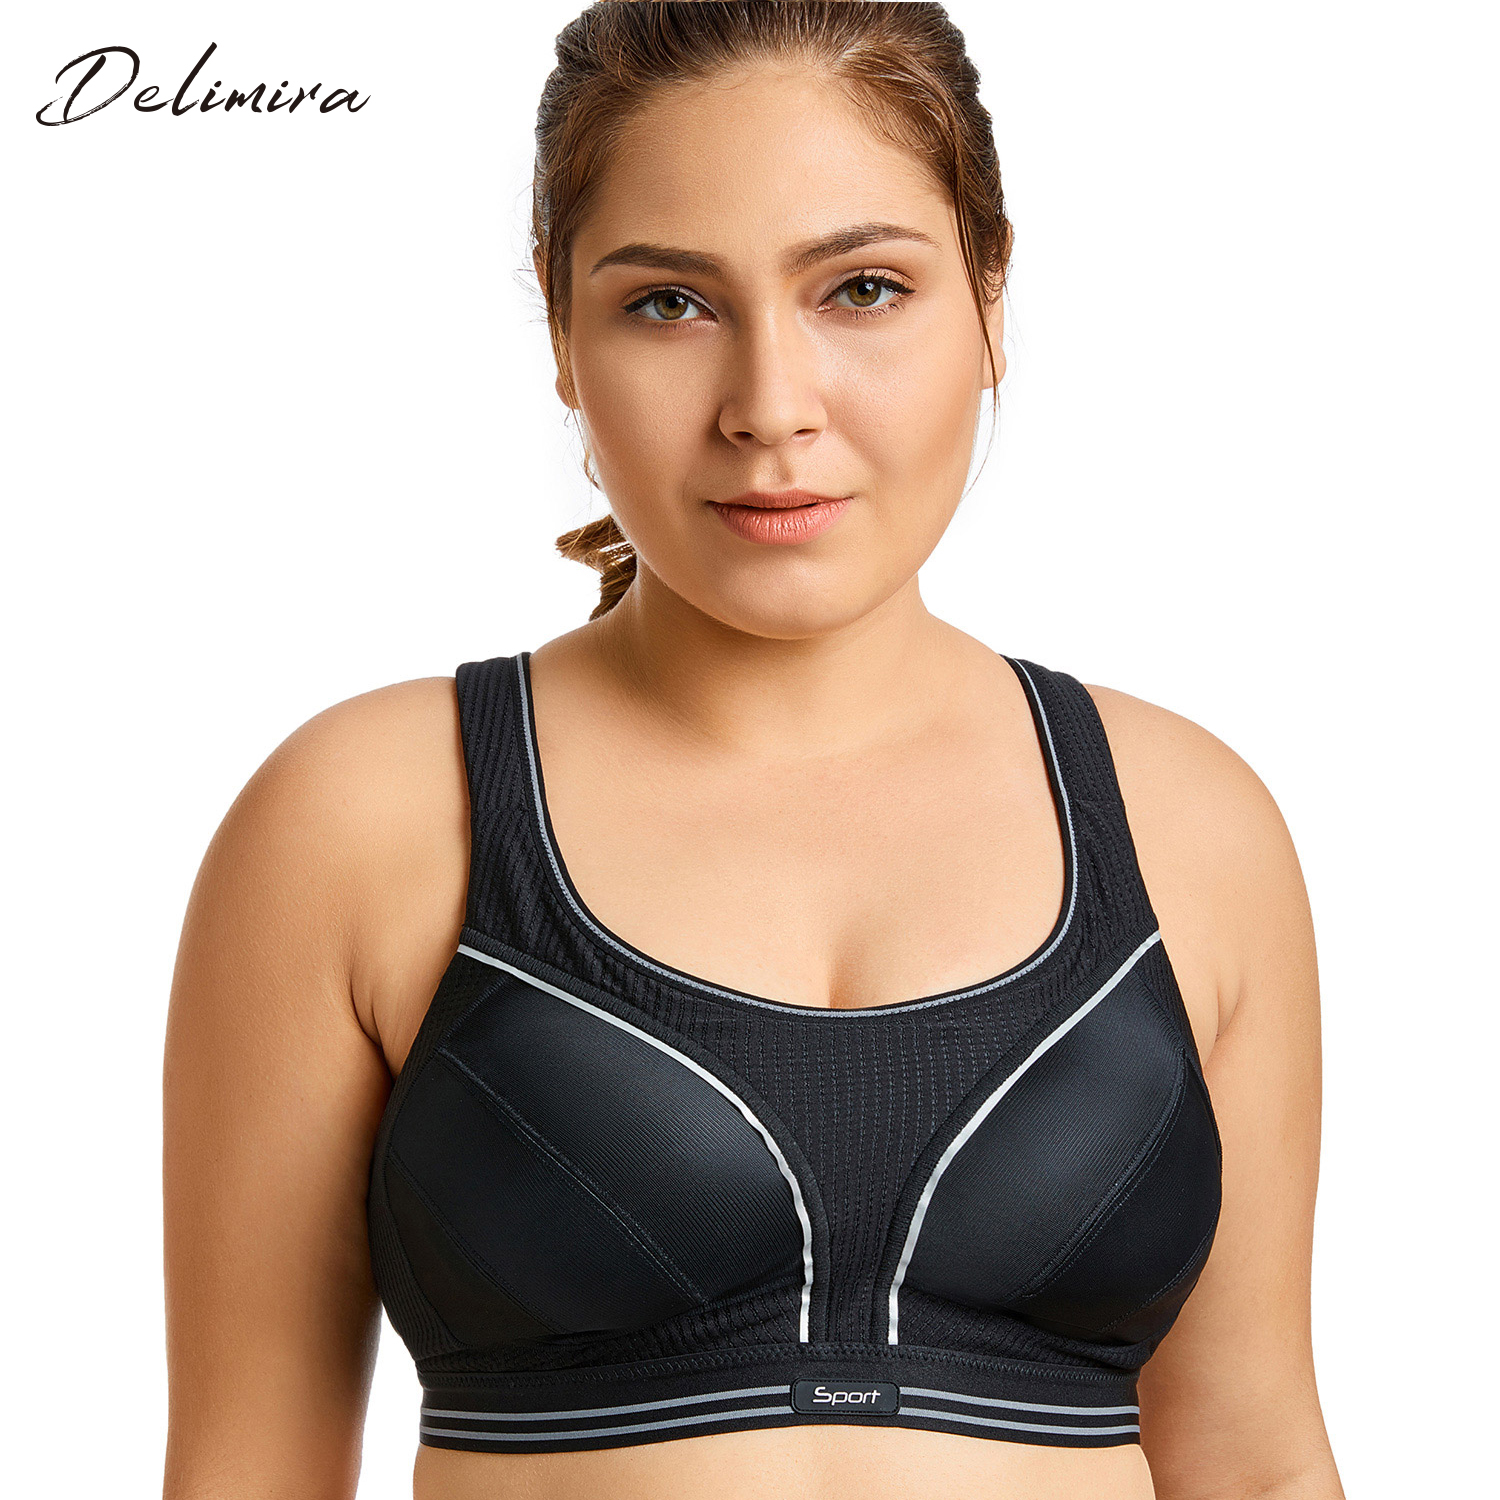 Women's High Impact Wire Free Adjustable Compression Racer back Plus Size Exercise Bra